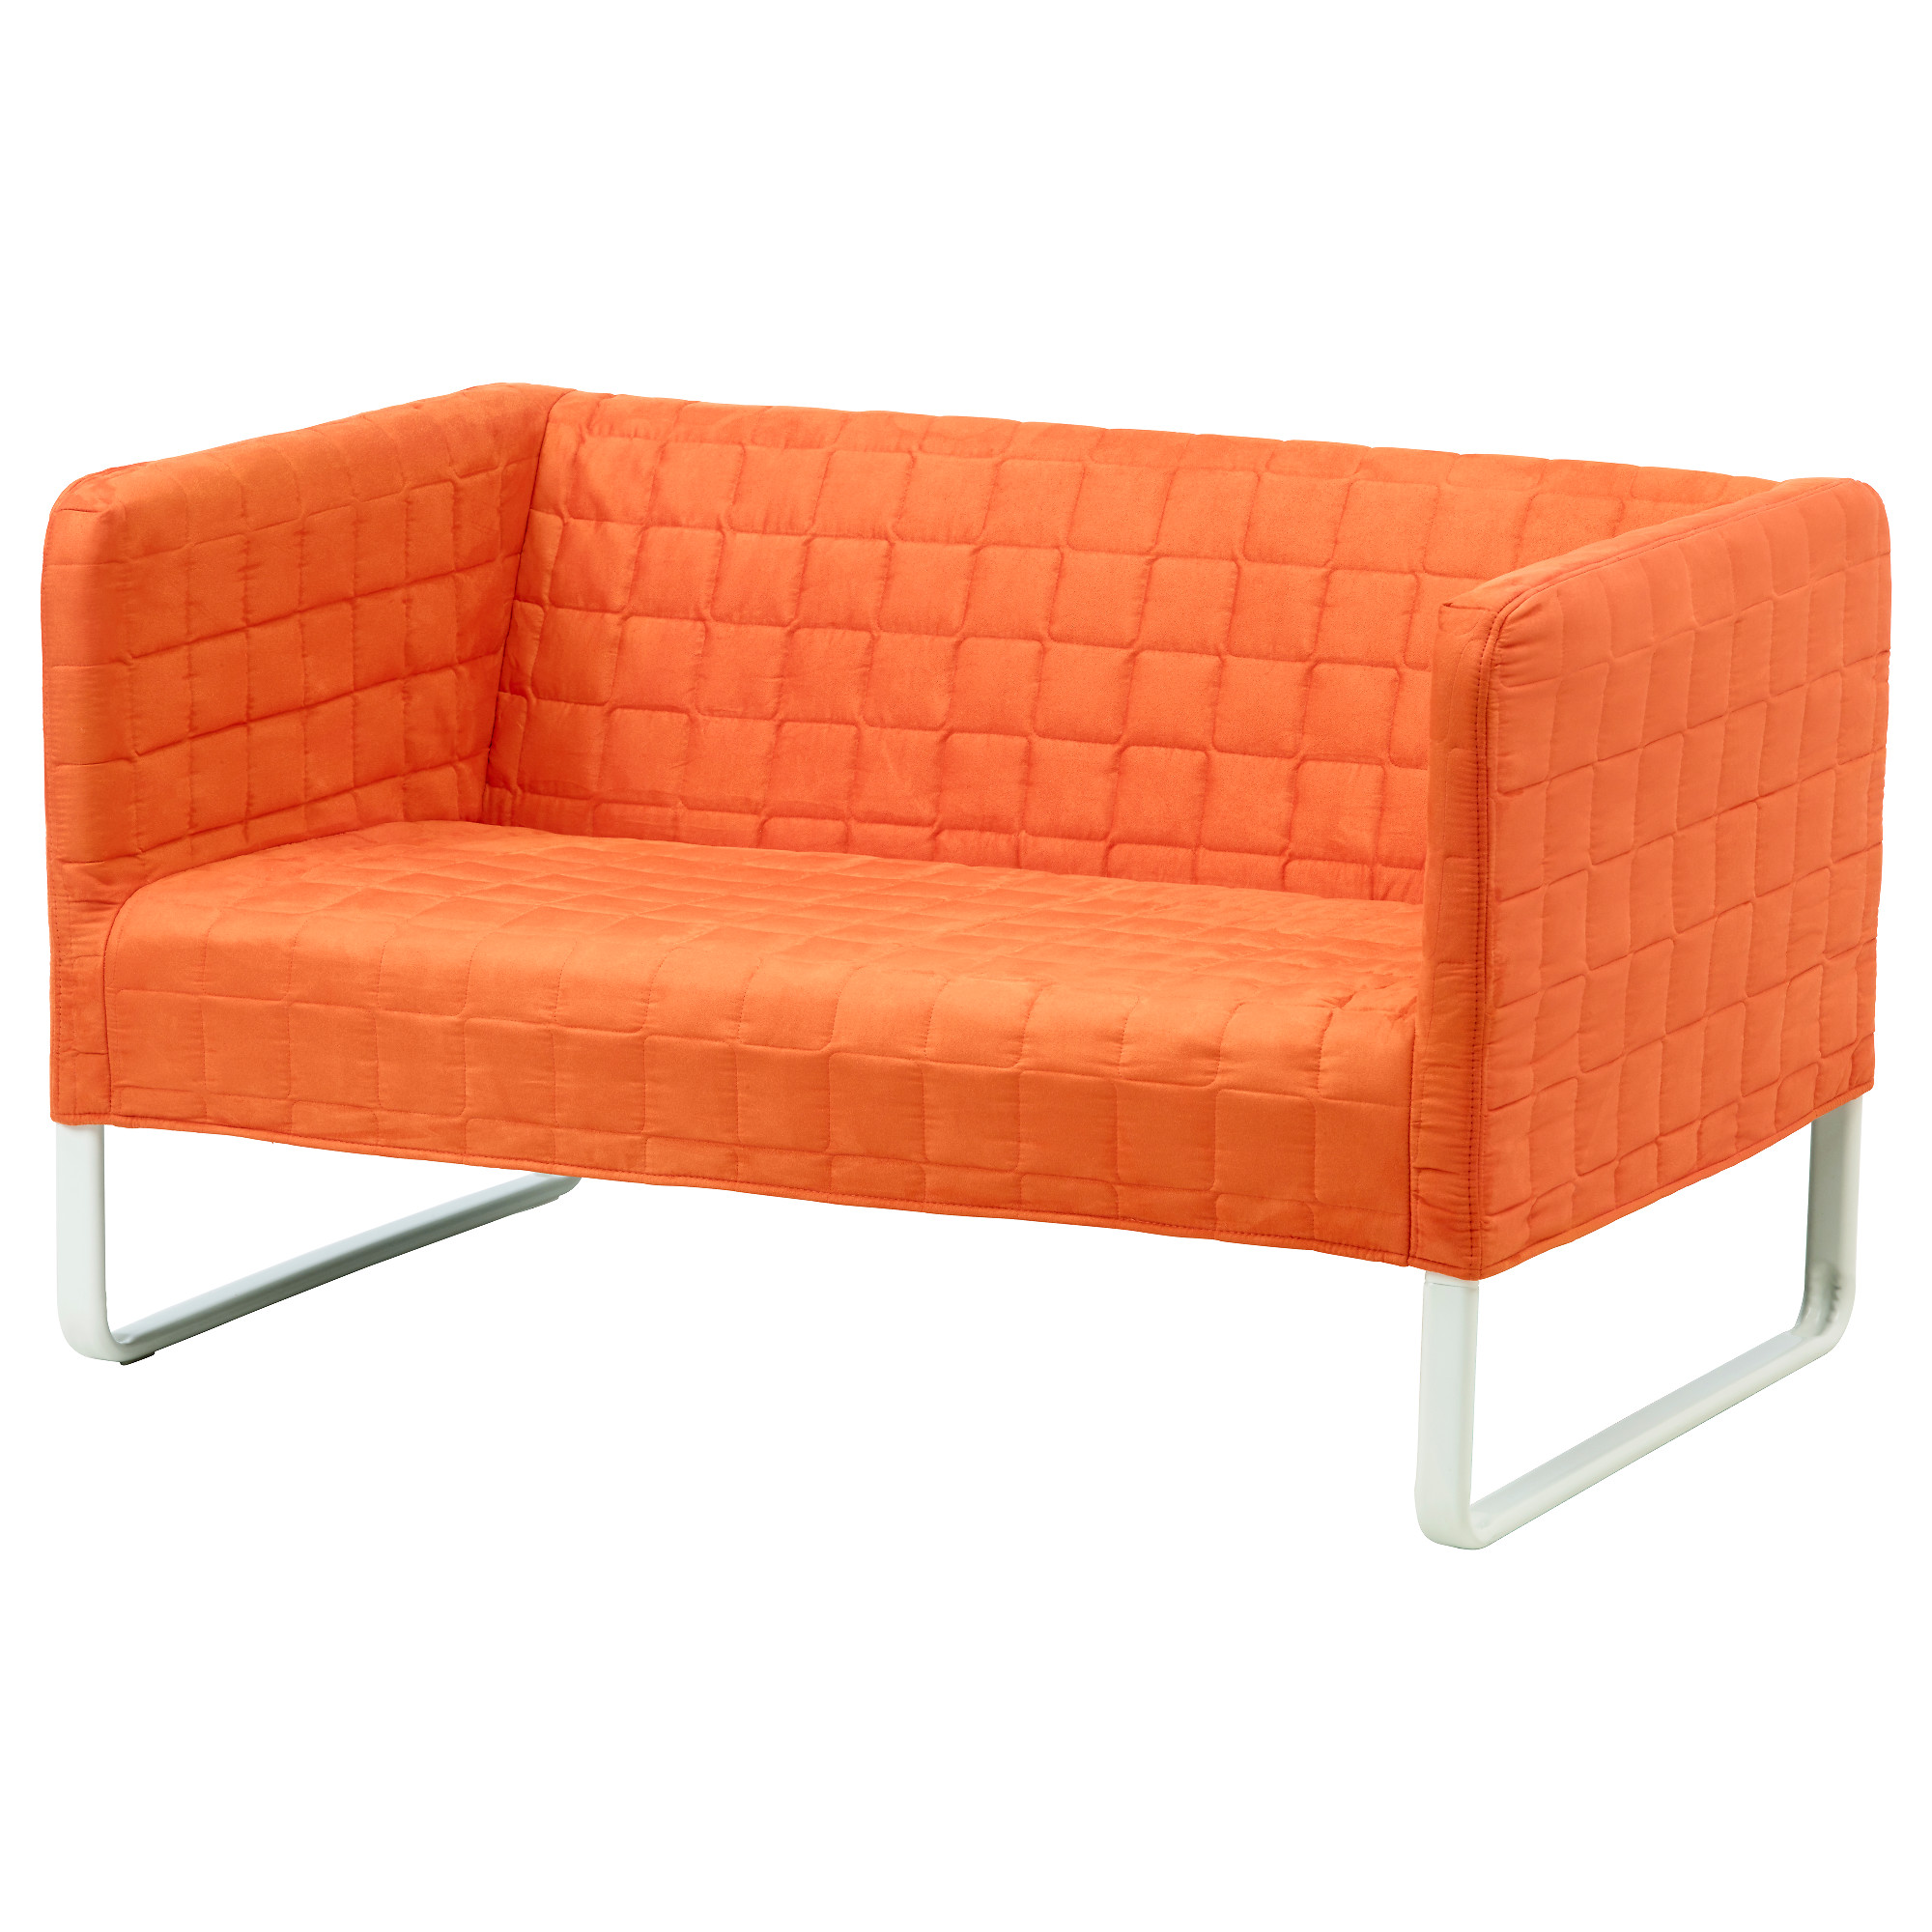 knopparp 2er-sofa - orange - ikea